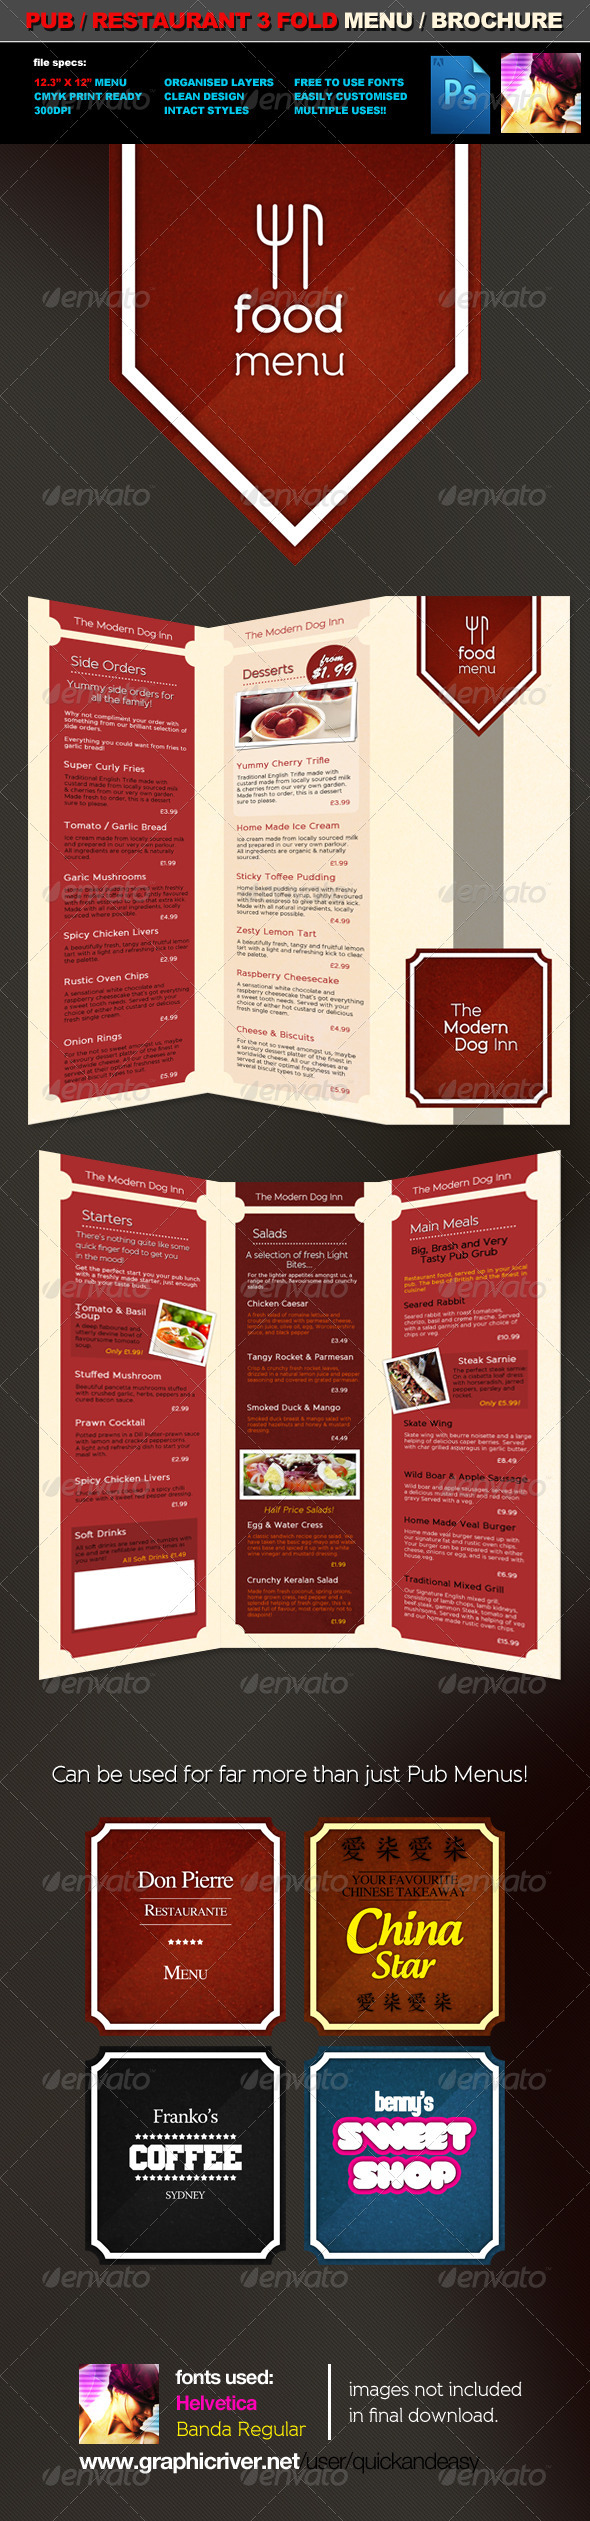 3 Fold Pub Food Menu / Brochure Template - Food Menus Print Templates